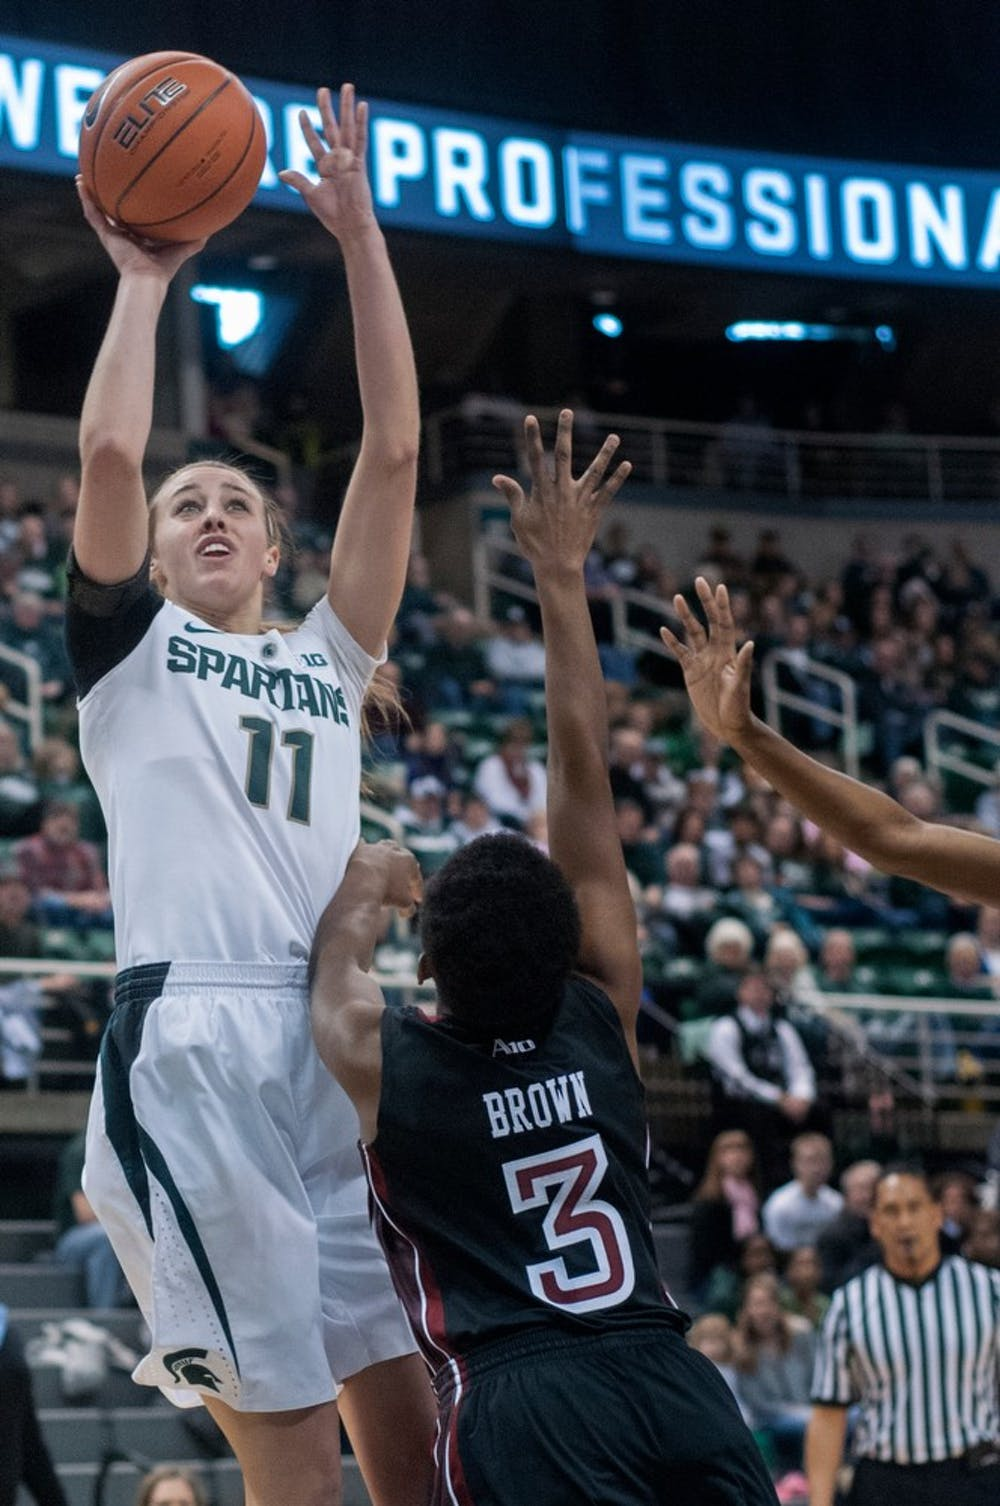 <p>Junior forward Annalise Pickrel goes to shoot the ball during the game against Temple on Dec. 29, 2012, at Breslin Center. Pickrel was the leading scorer for the Spartans with a total of 16 points, helping them beat the Owls 57-47. Natalie Kolb/The State News</p>